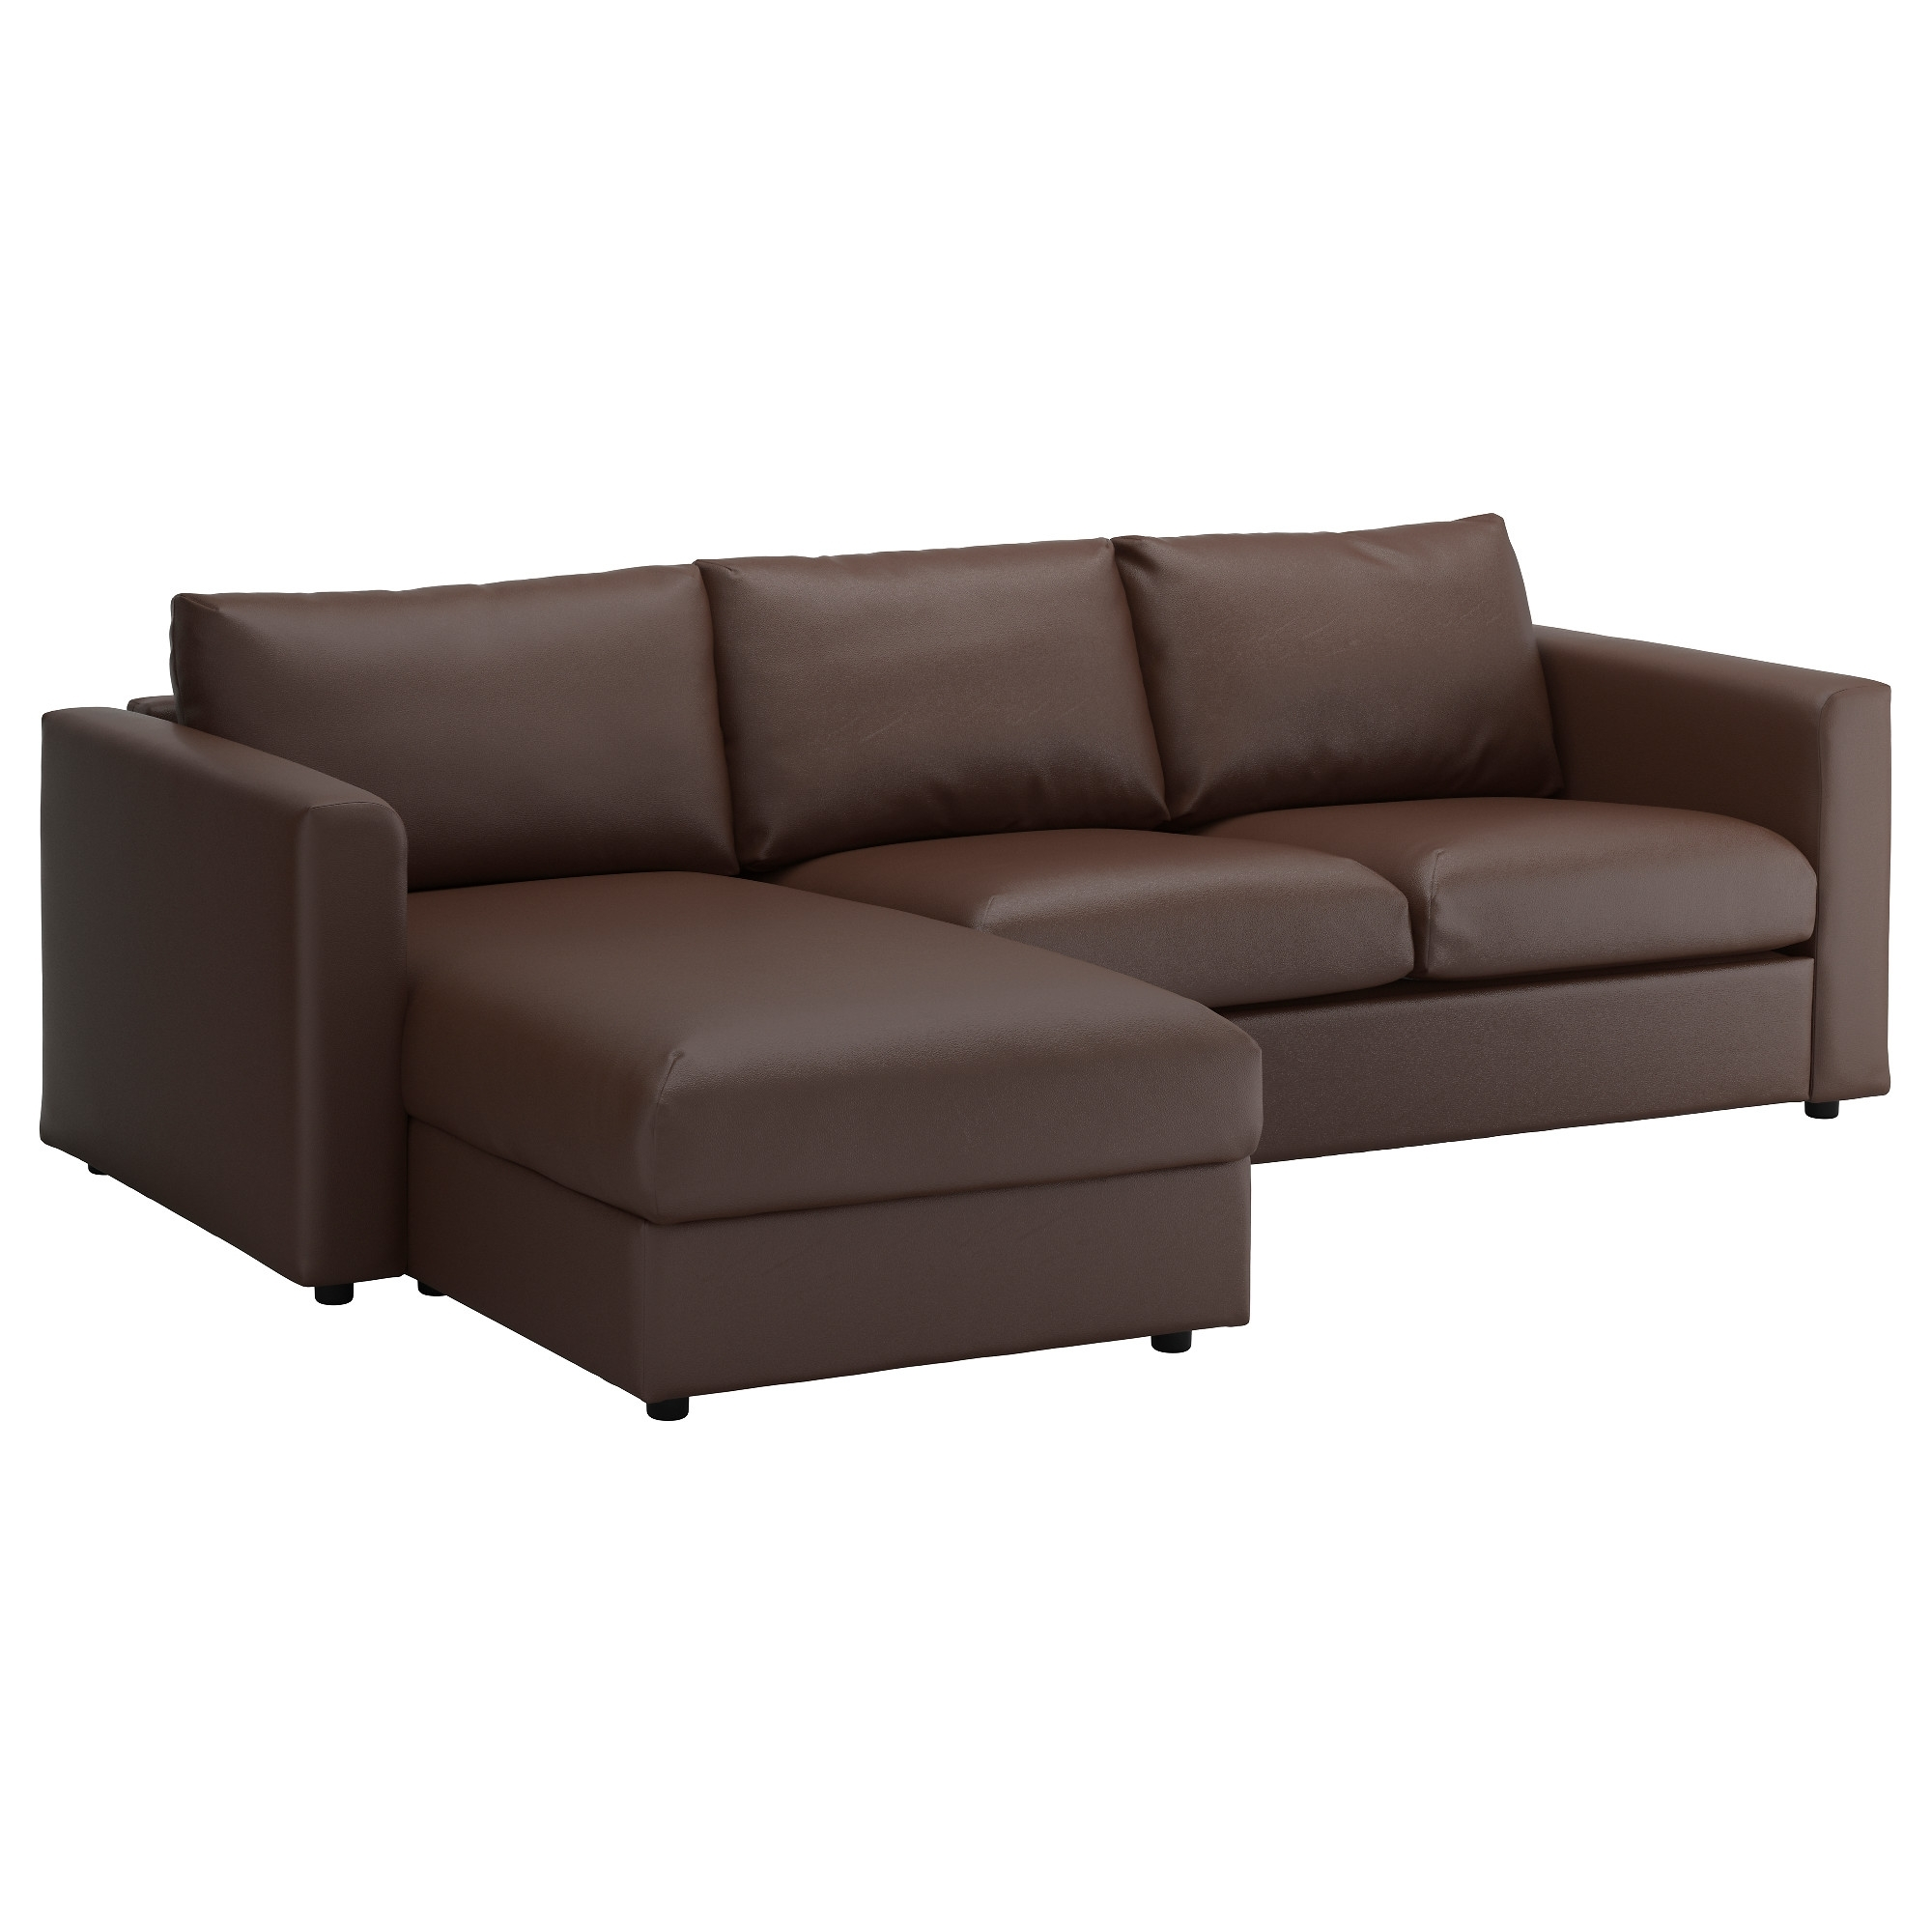 Vimle Sofa - With Chaise/gunnared Medium Gray - Ikea regarding Current Ikea Chaise Couches